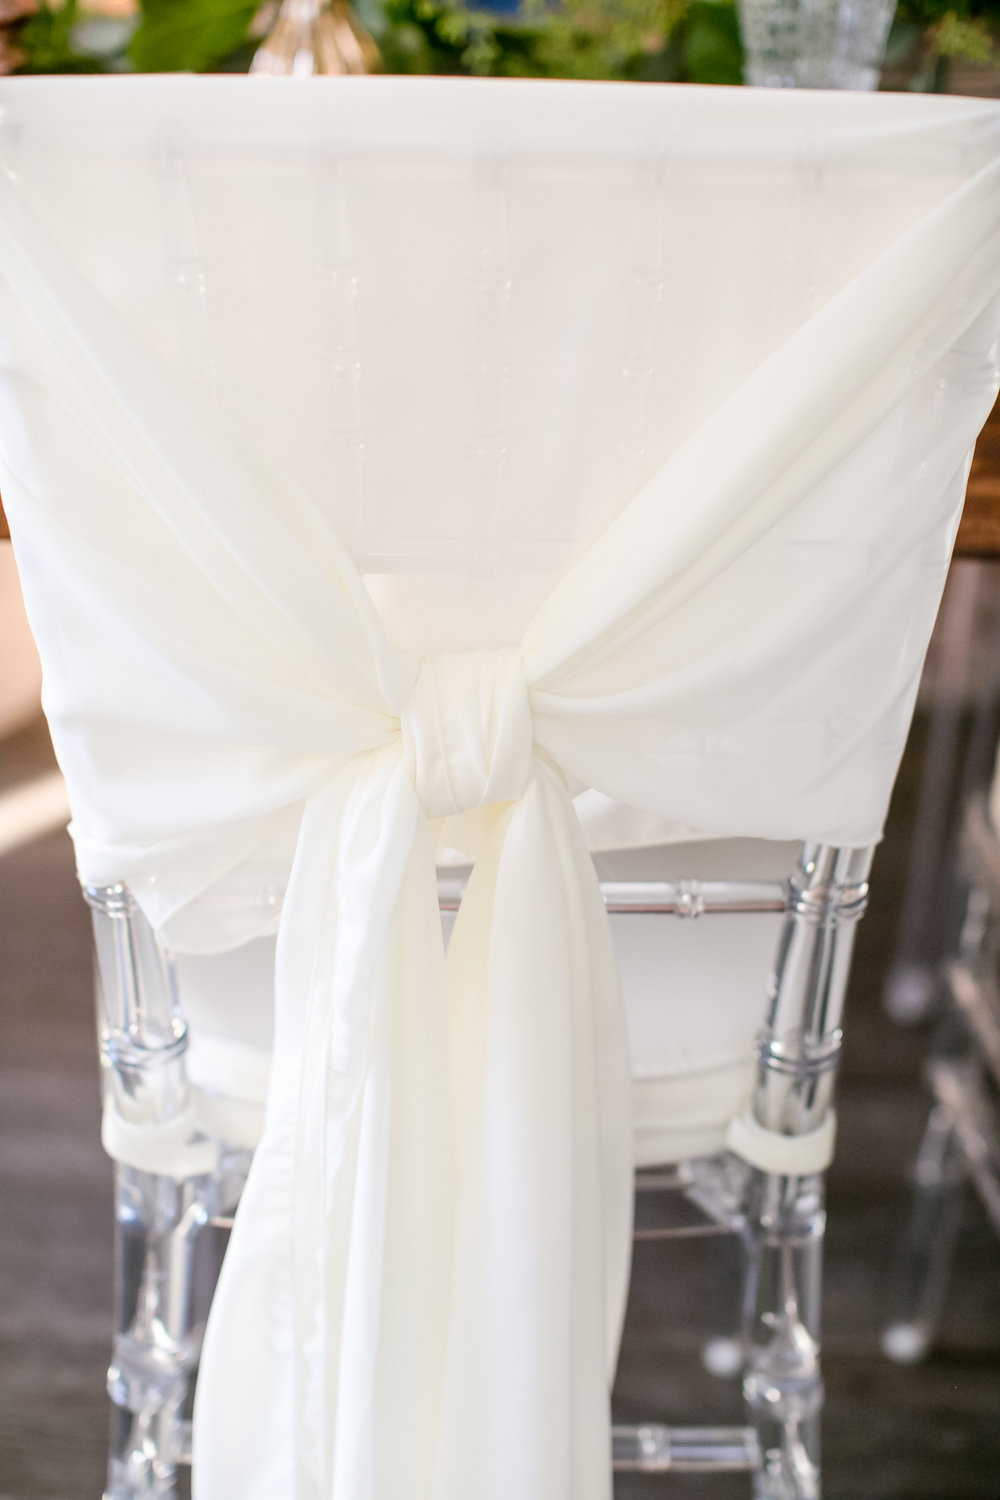 Jeannine Marie Photography | We've Got it Covered | Bel Fiore | Sixpence Events & Planning table styling for wedding, harvest table with gold chargers and navy napkins | clear chiavari chair white sash knot